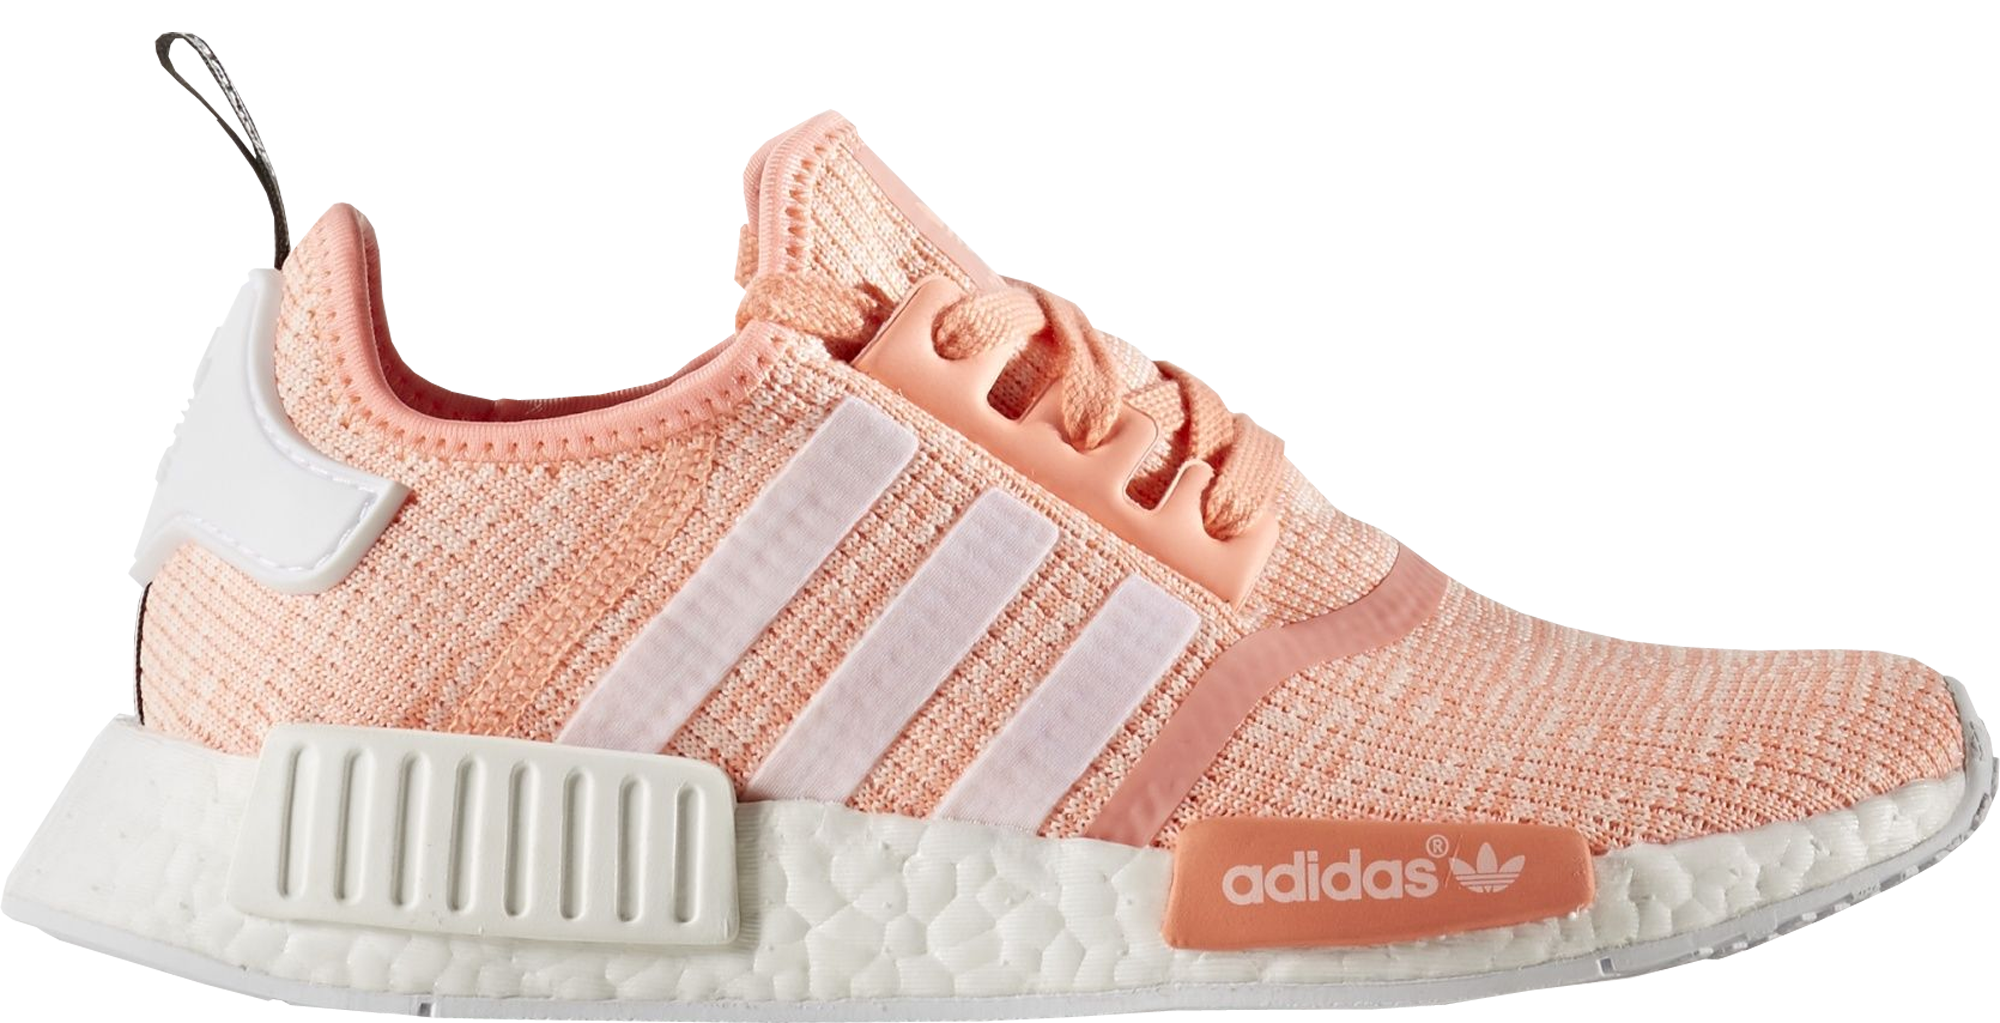 6204fab2 nikeybens on | Celebrity style | Trendy womens sneakers, Adidas nmd ...